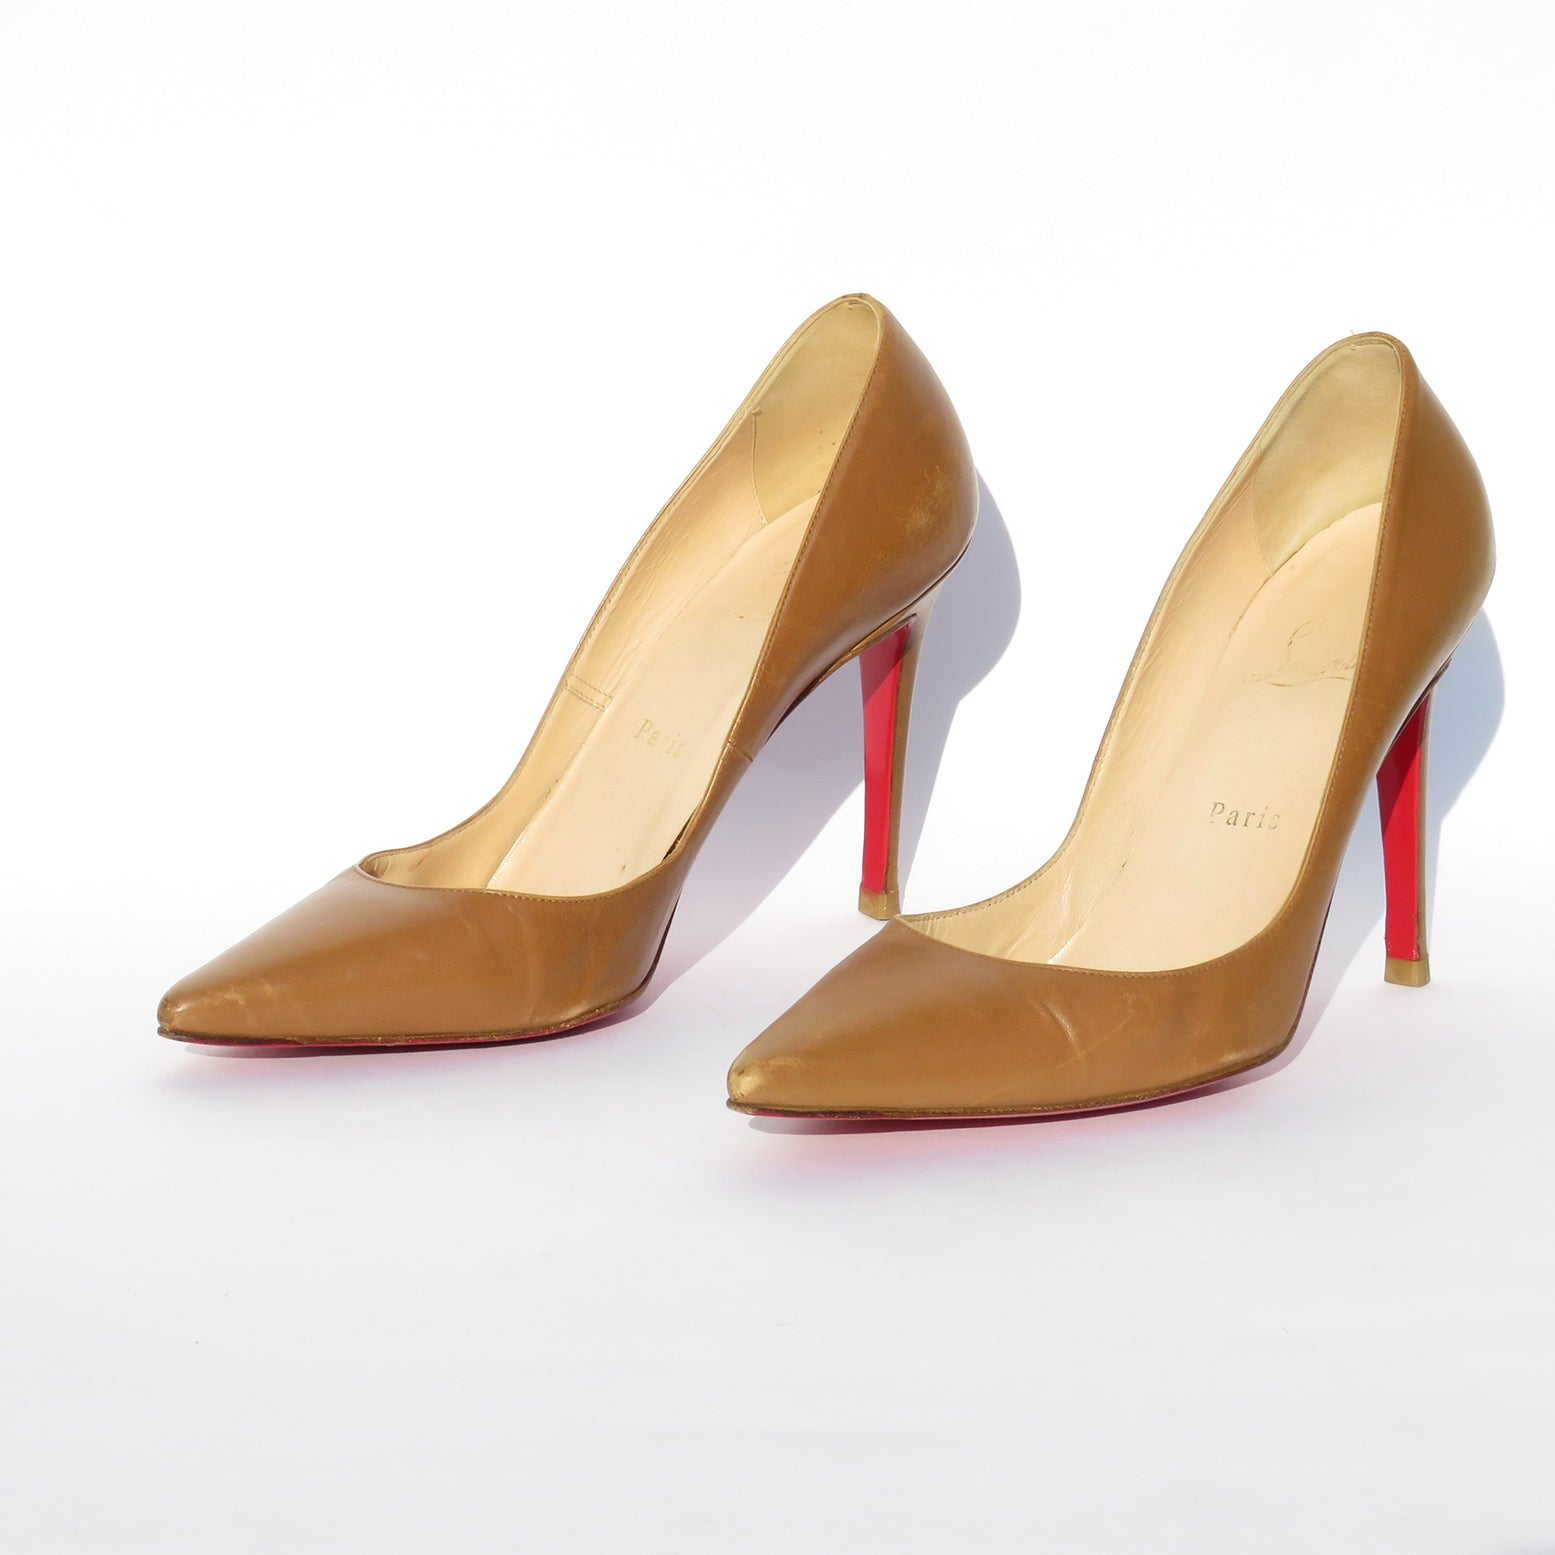 CHRISTIAN LOUBOUTIN Cognac Tan Brown Leather Pointed Toe Stiletto Heel Pumps 39